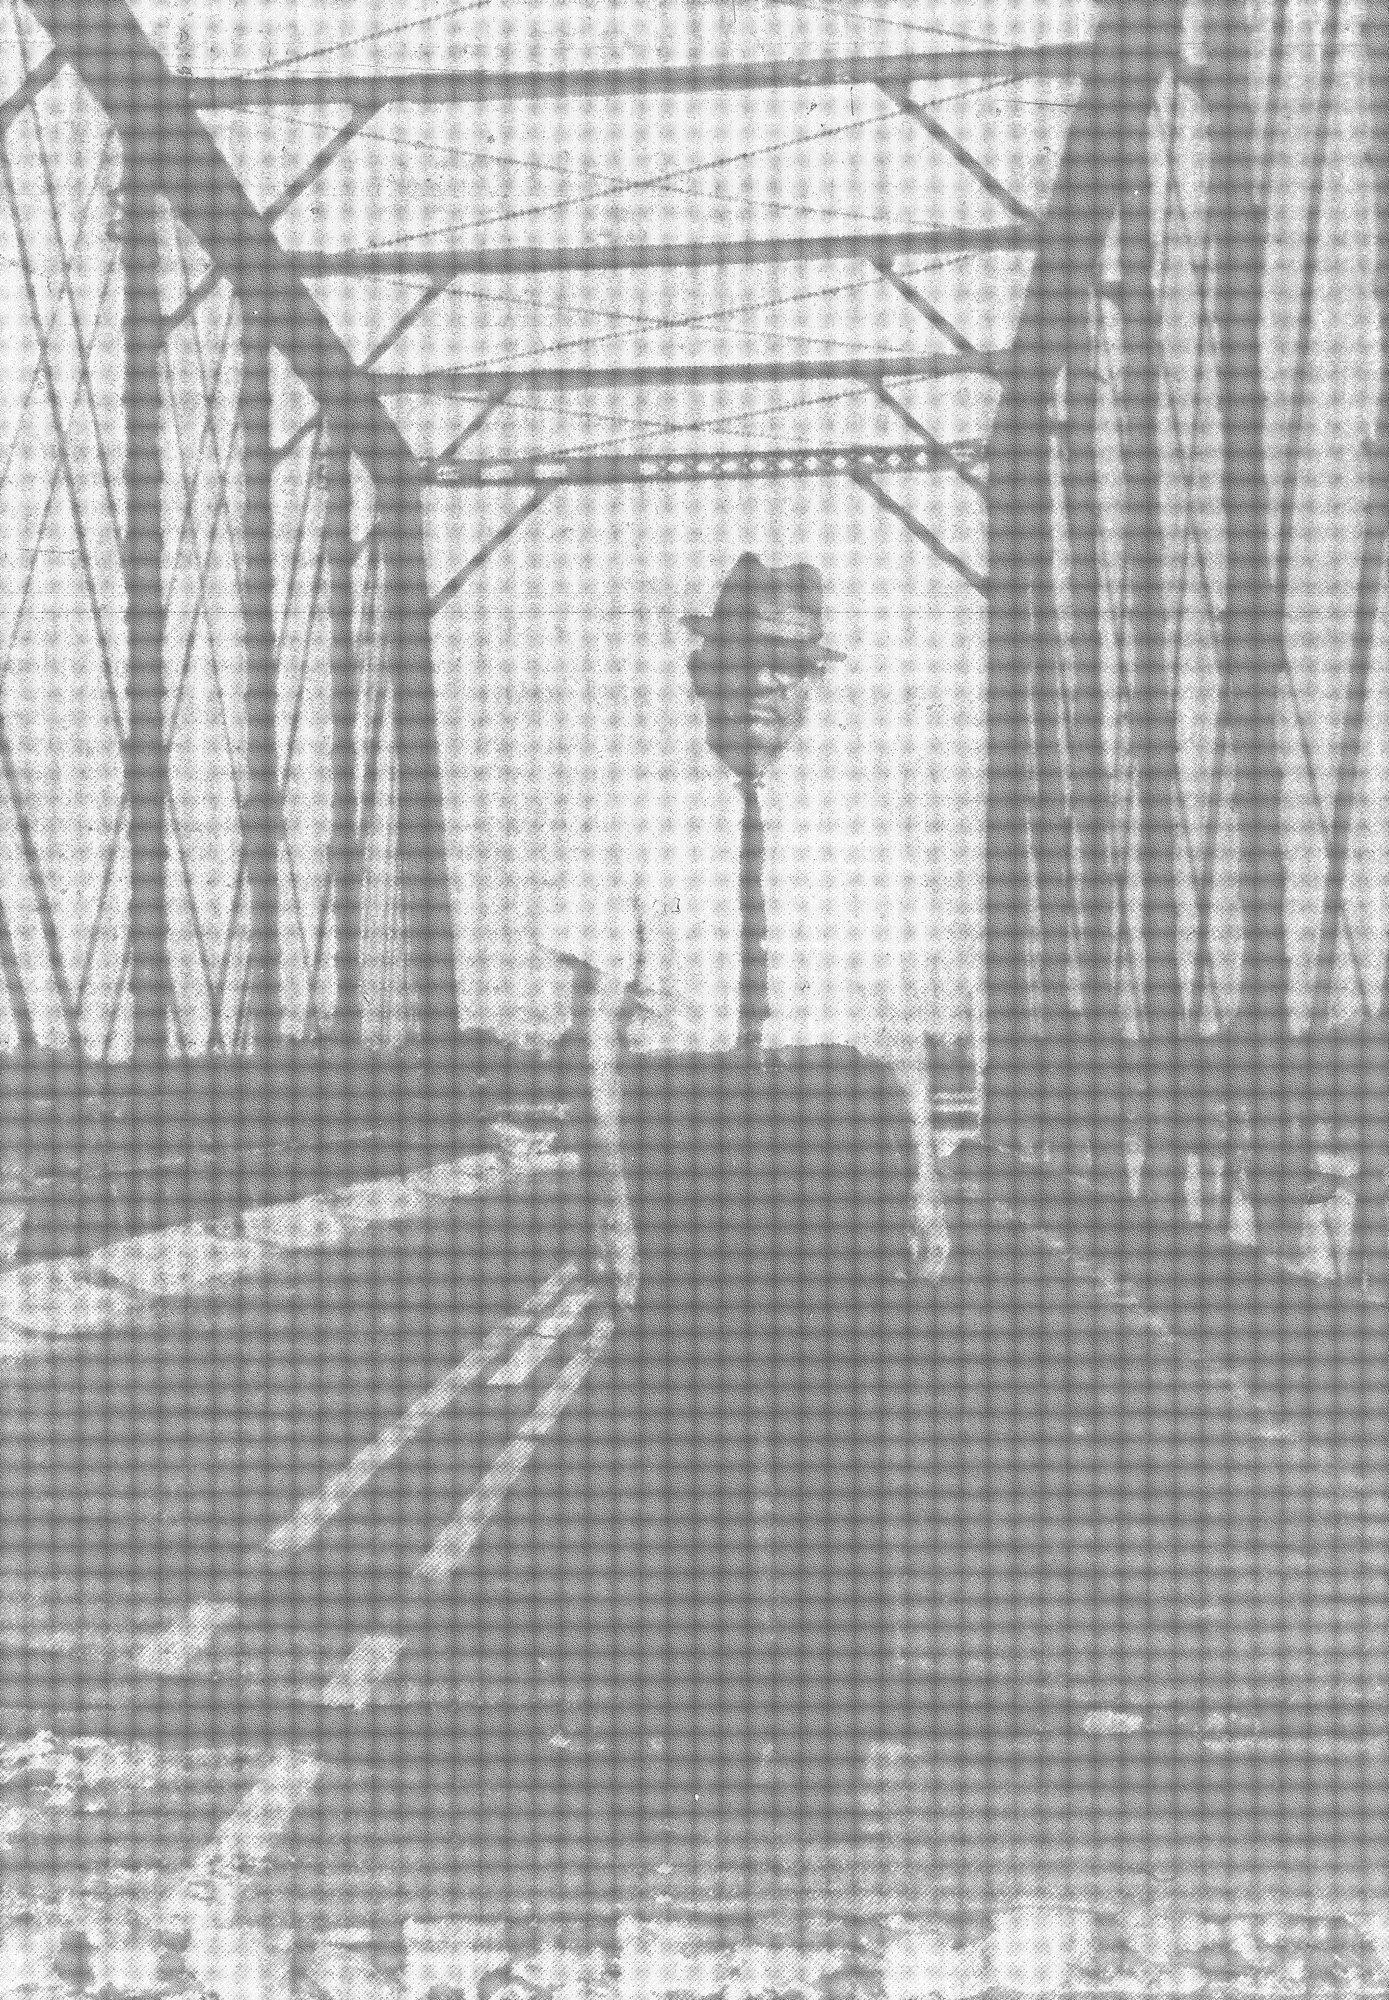 B. K. Mills, roadmaster for the Atlantic Coast Line Railroad, waits in 1964 for the Pinewood Road Bridge to be removed from its moorings so he can take it away. The steel bridge, property of the railroad, will be lowered onto rail cars and hauled to a repair shop for rebuilding and relocation.